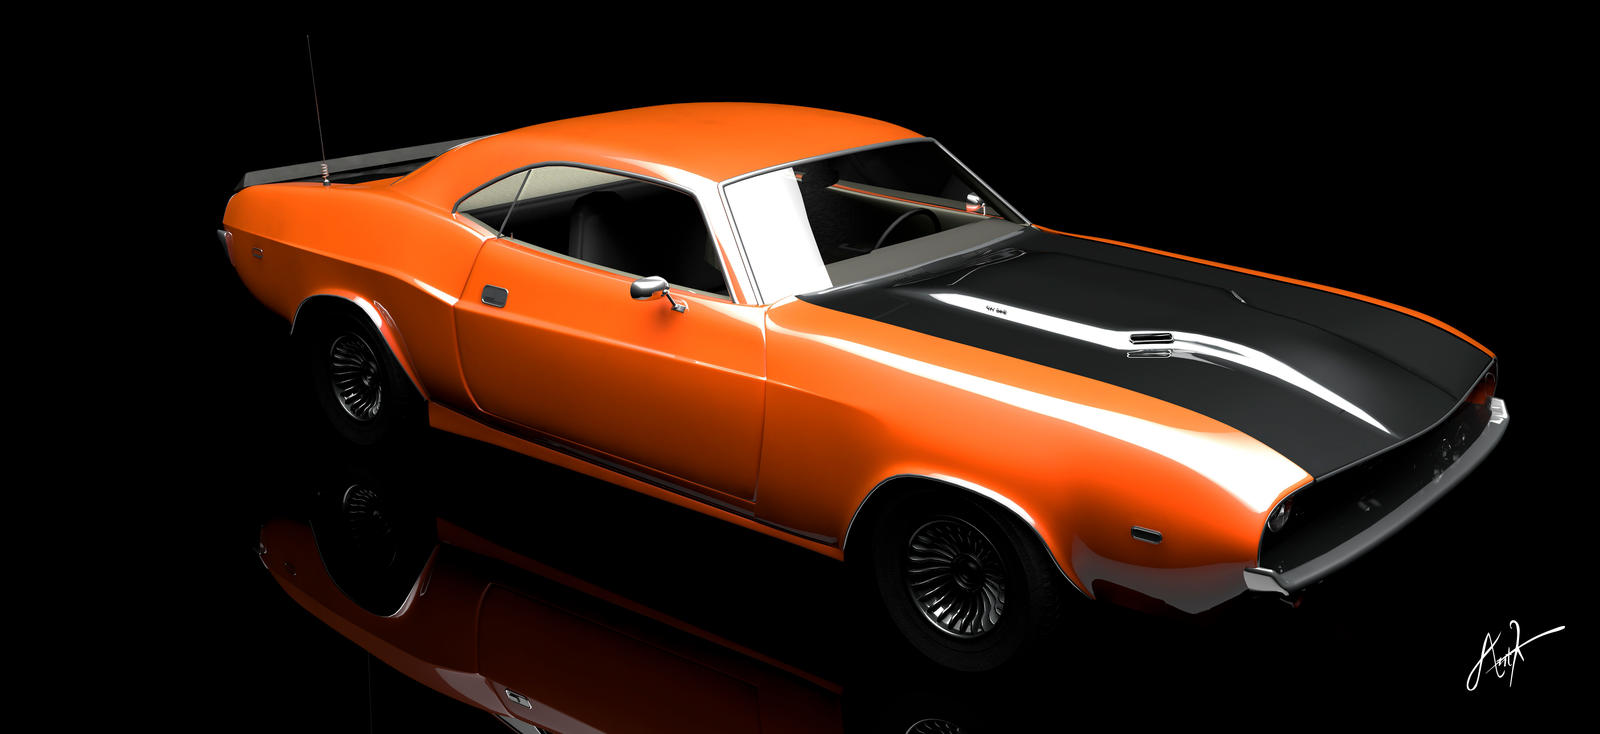 Dodge Challenger by rOEN911